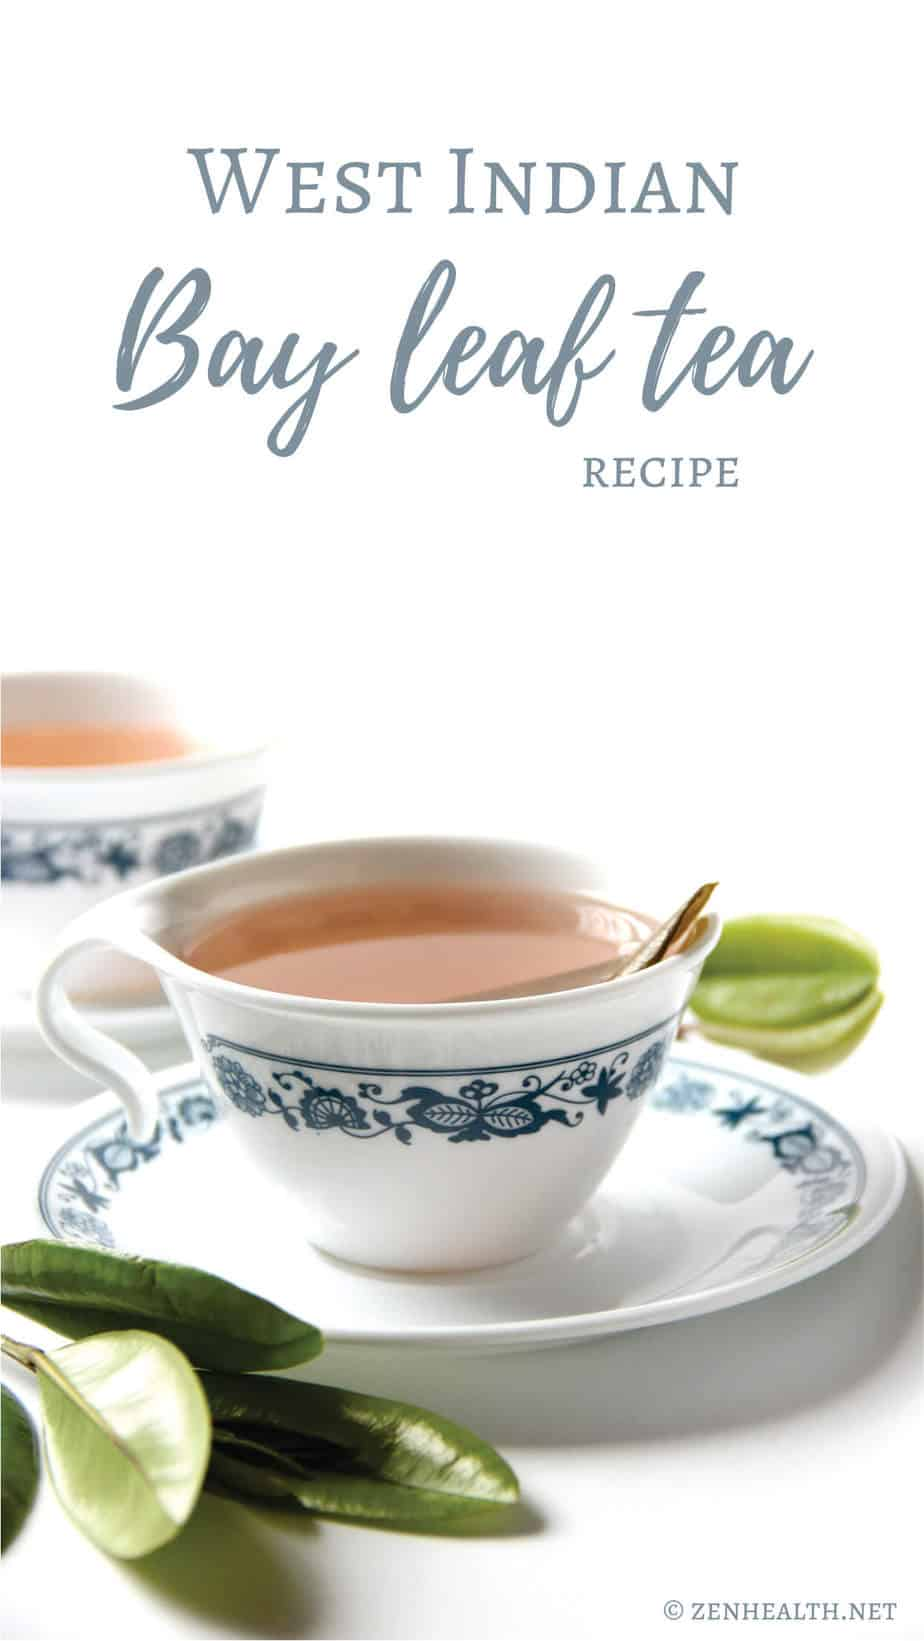 West Indian Bay Leaf Tea Recipe